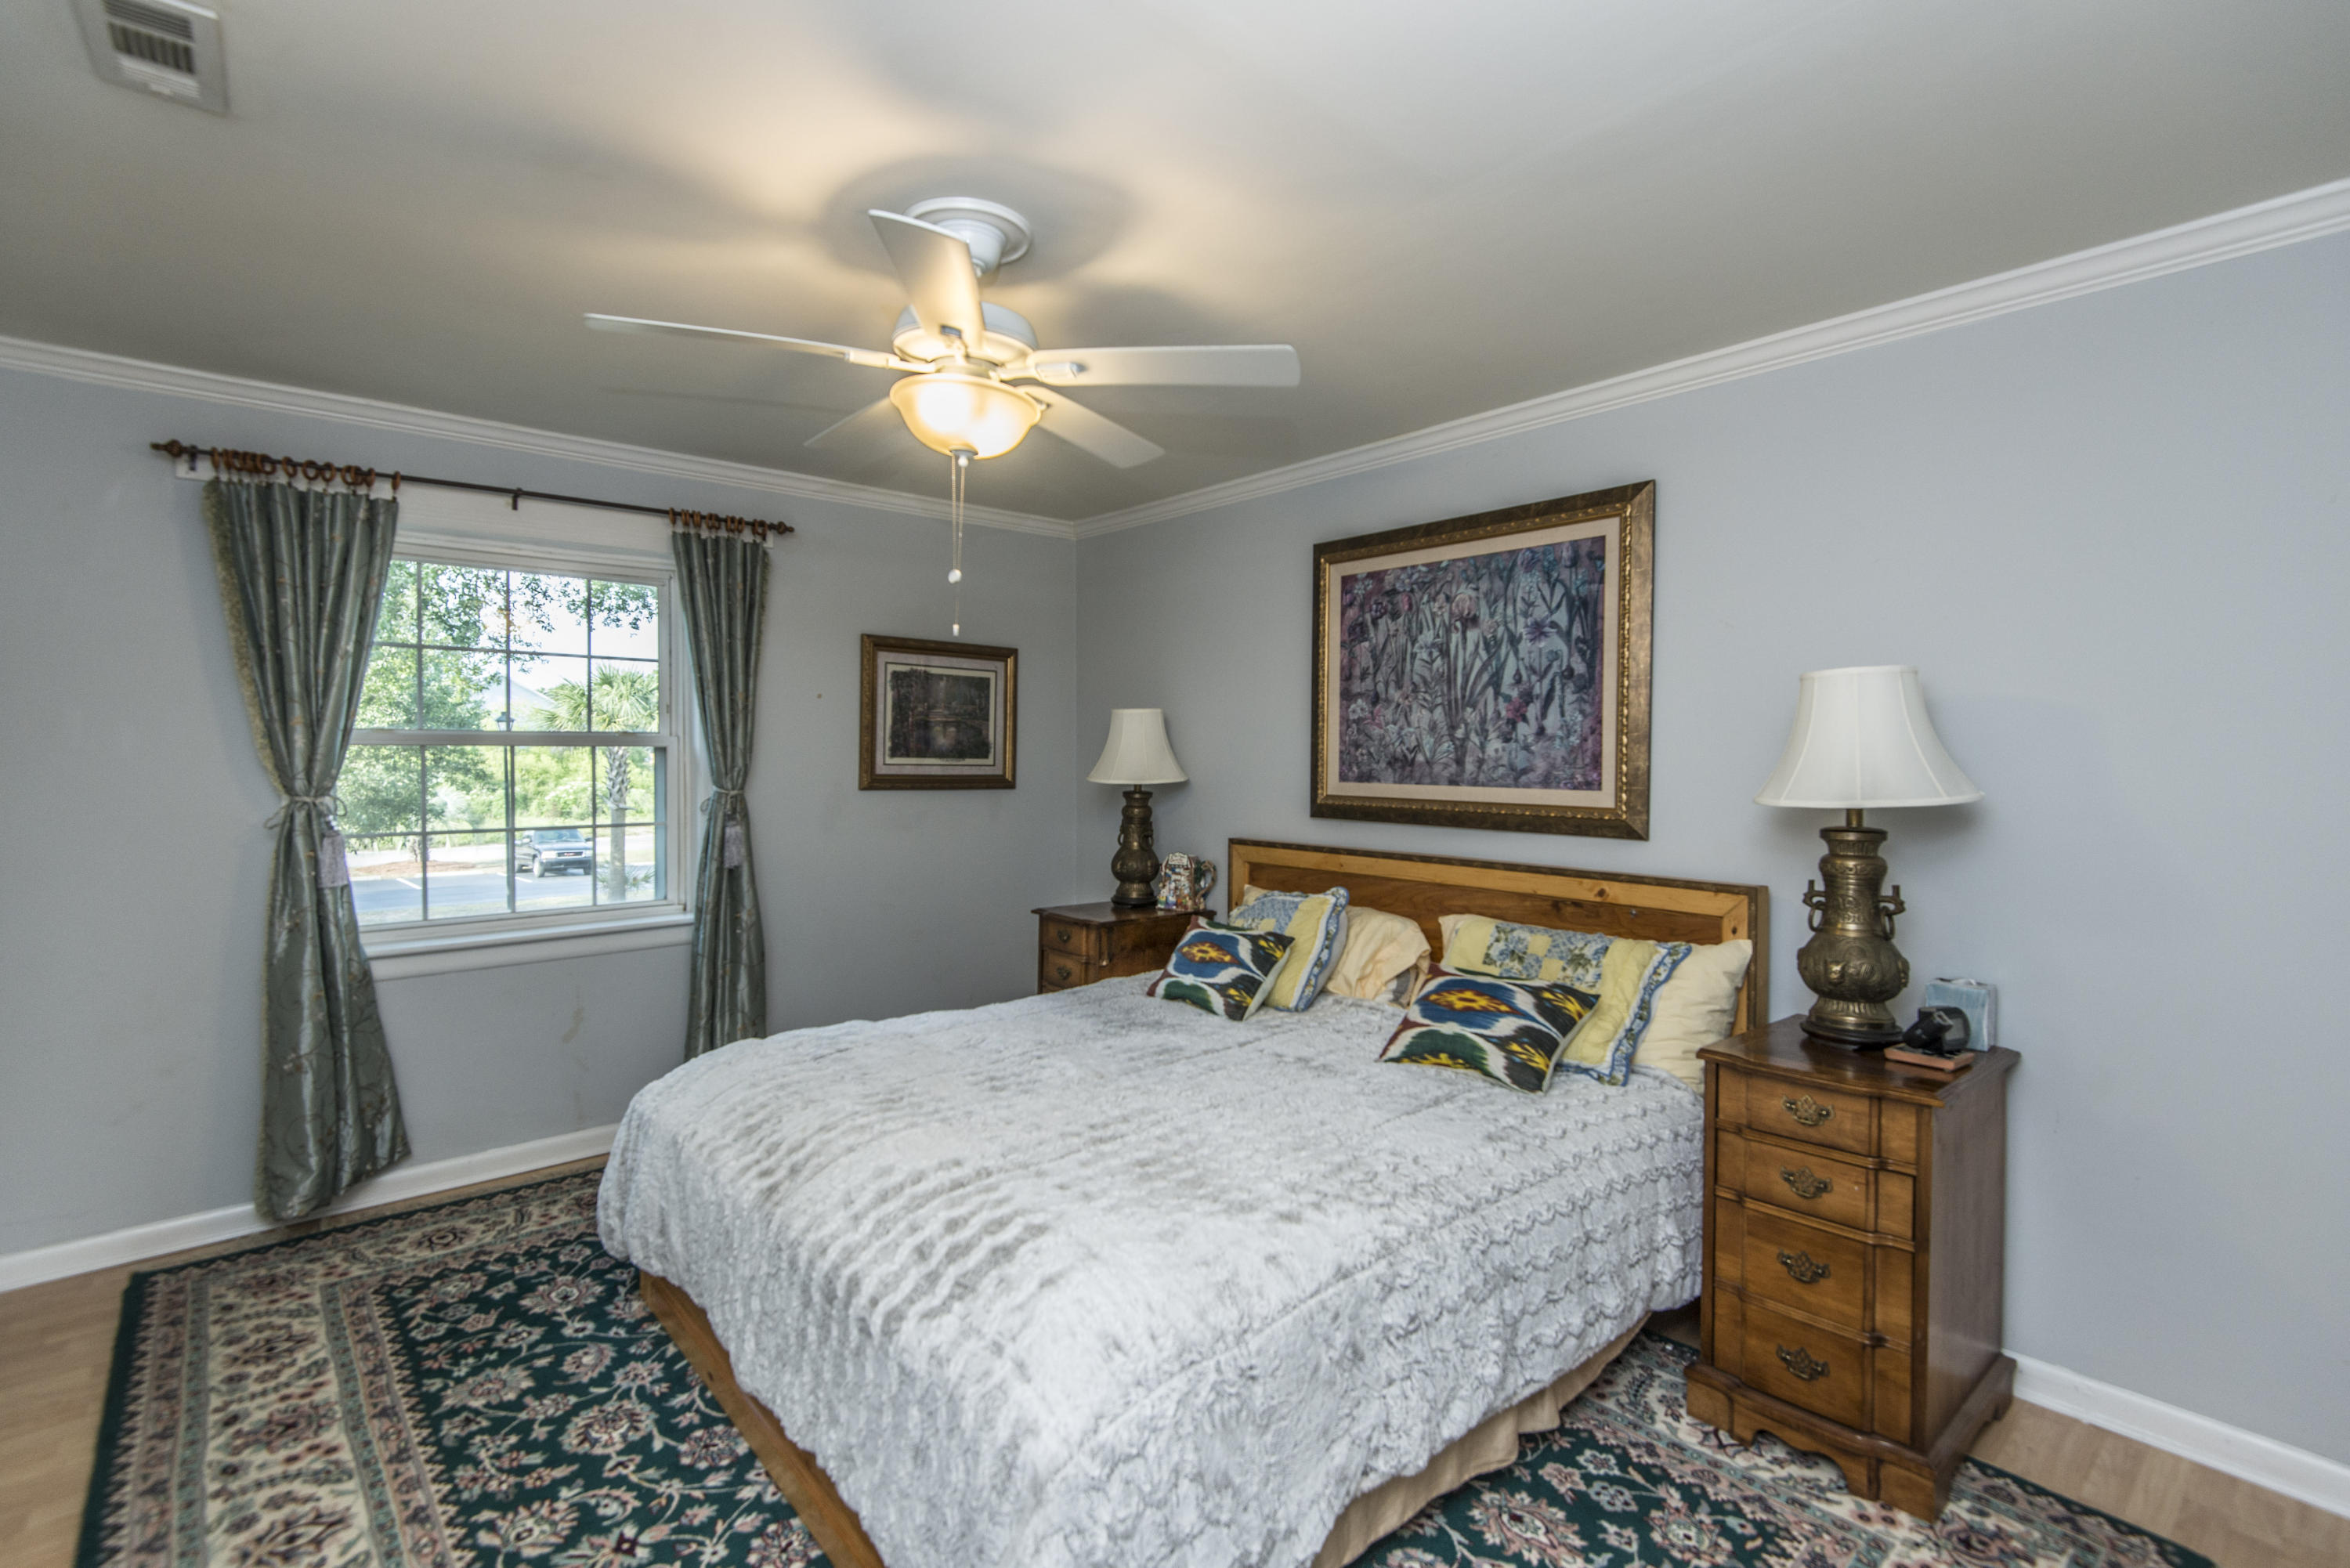 Rivers Point Row Homes For Sale - 21 Rivers Point Row, Charleston, SC - 22